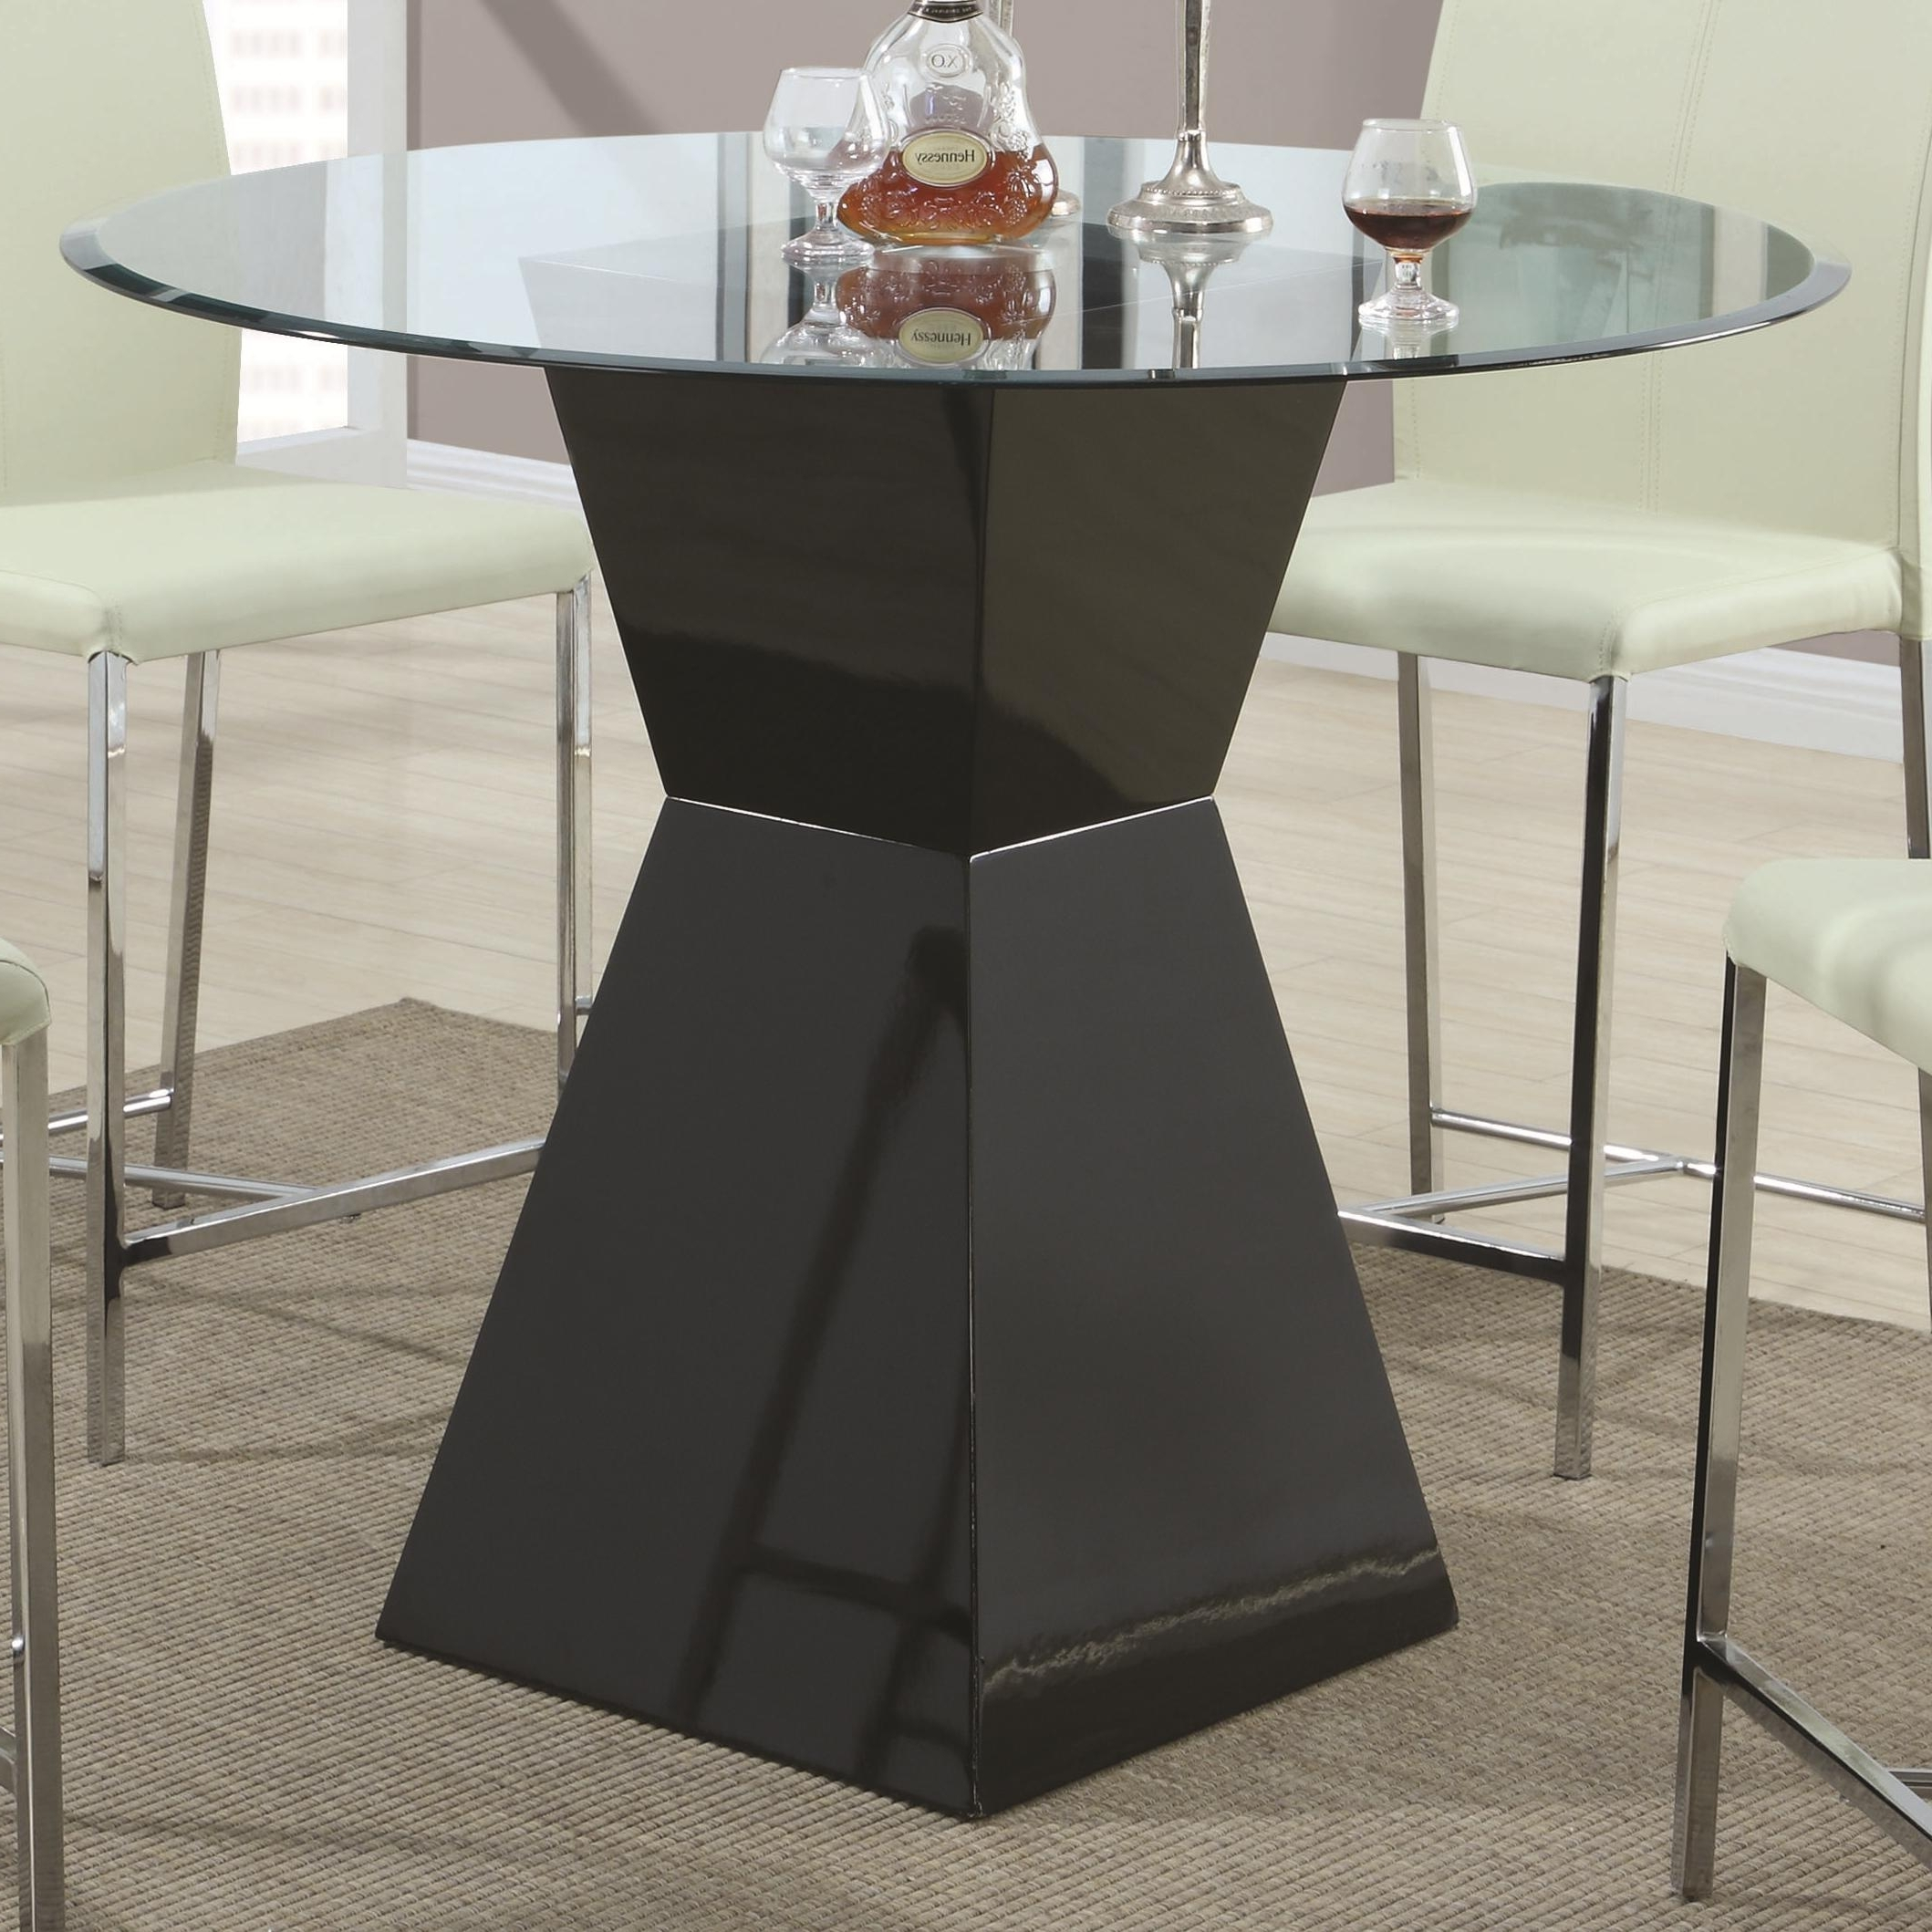 Latest Square Black Glass Dining Tables Regarding Round Glass Dining Table With Square Black Wooden Base On Grey Rug (View 9 of 25)